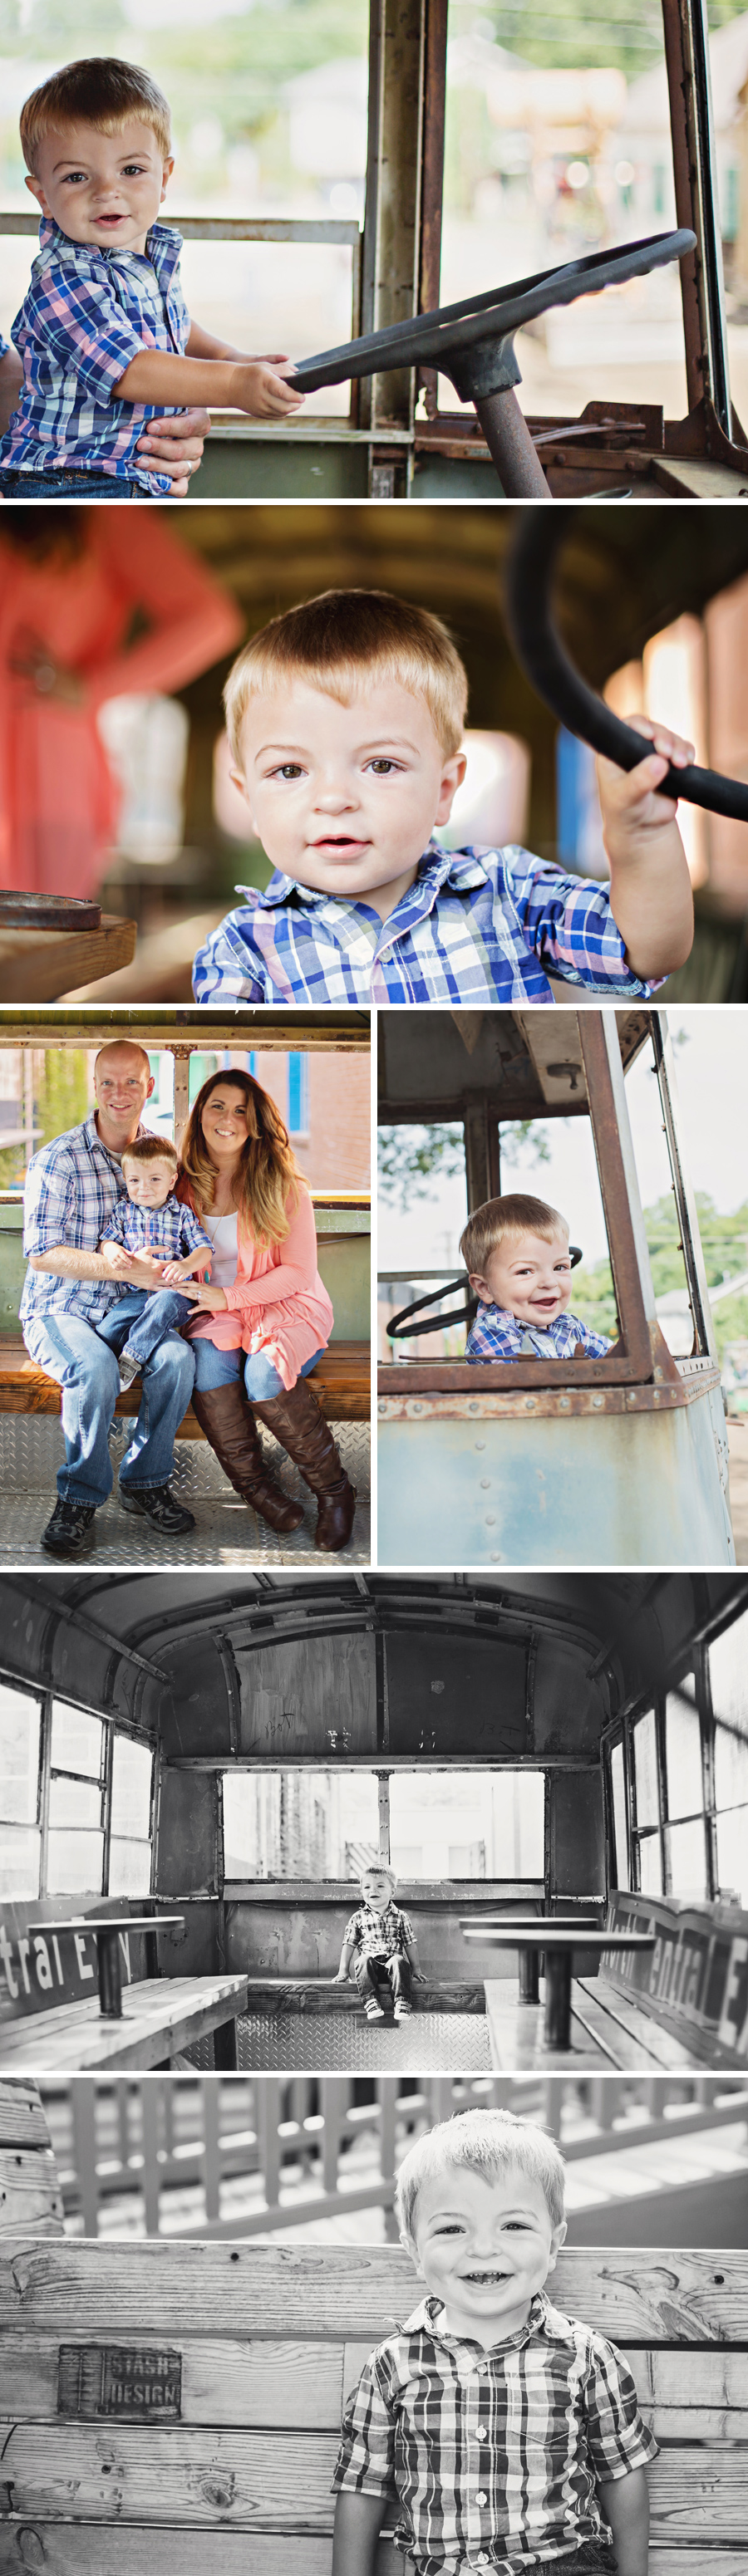 Dallas-Family-PhotographerG001